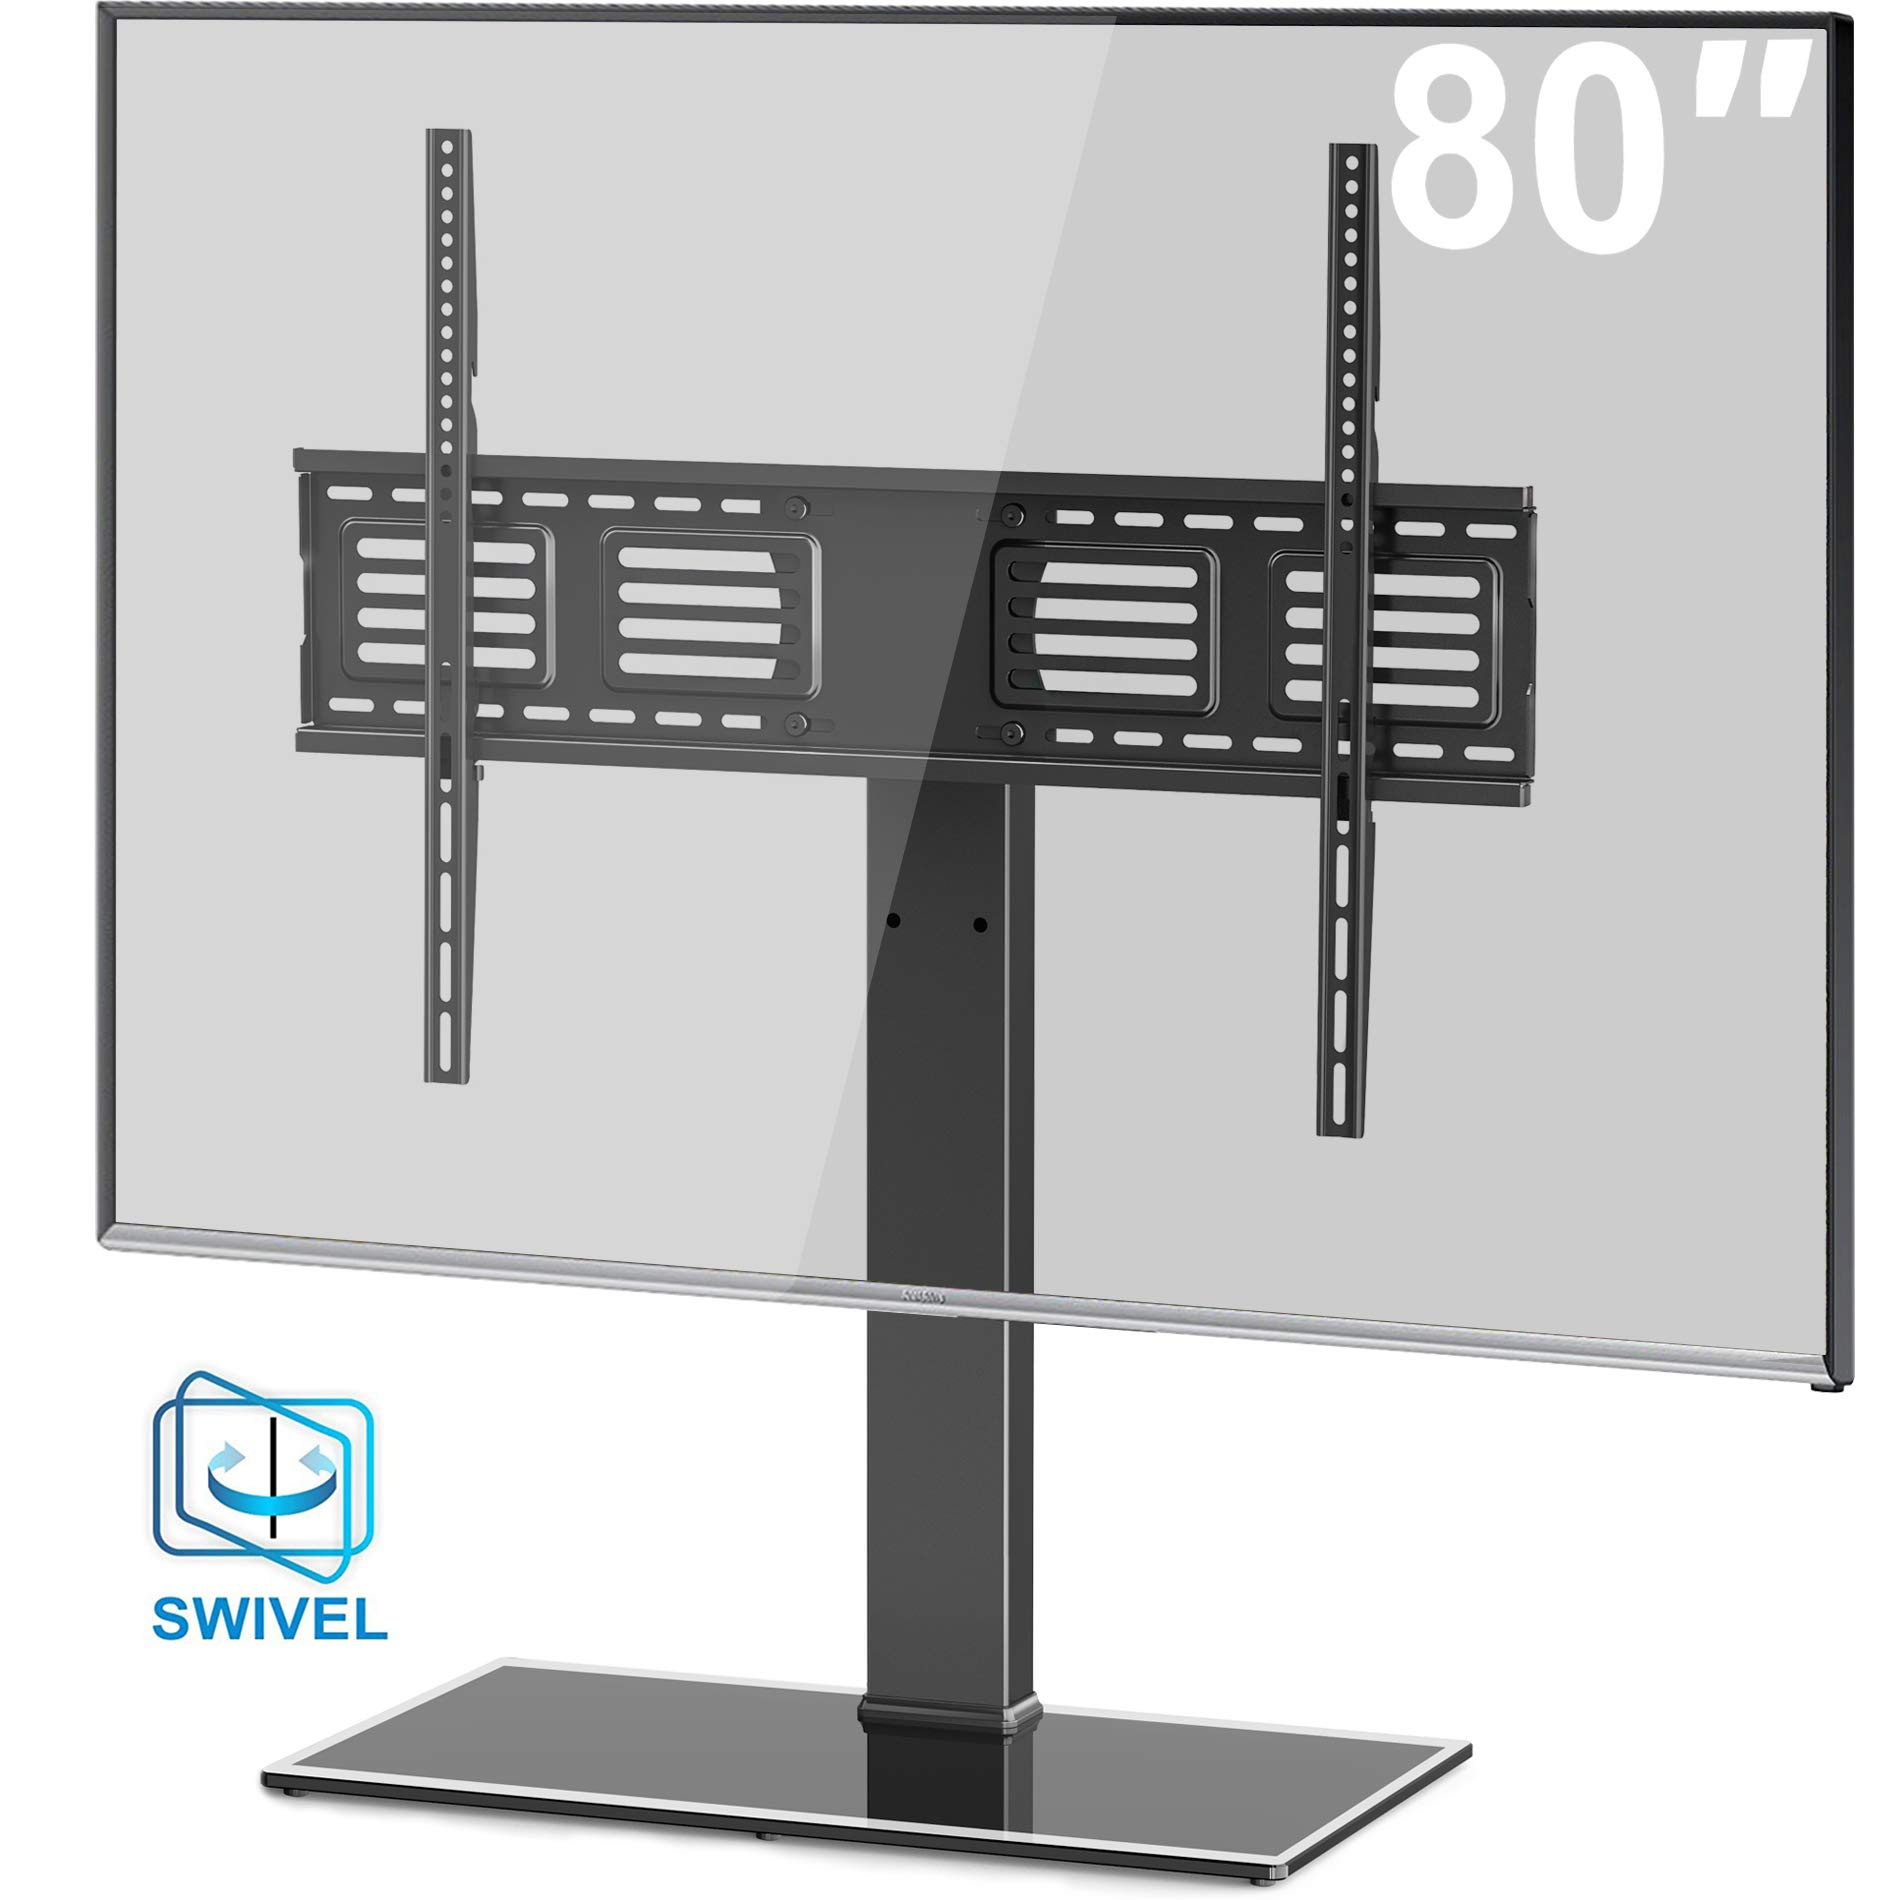 FITUEYES Universal TV Stand/Base Swivel Tabletop TV Stand with Mount for 50 to 80 inch Flat Screen TV 100 Degree Swivel, 4 Level Height Adjustable,Tempered Glass Base,Holds up to 198lbs Screens by FITUEYES